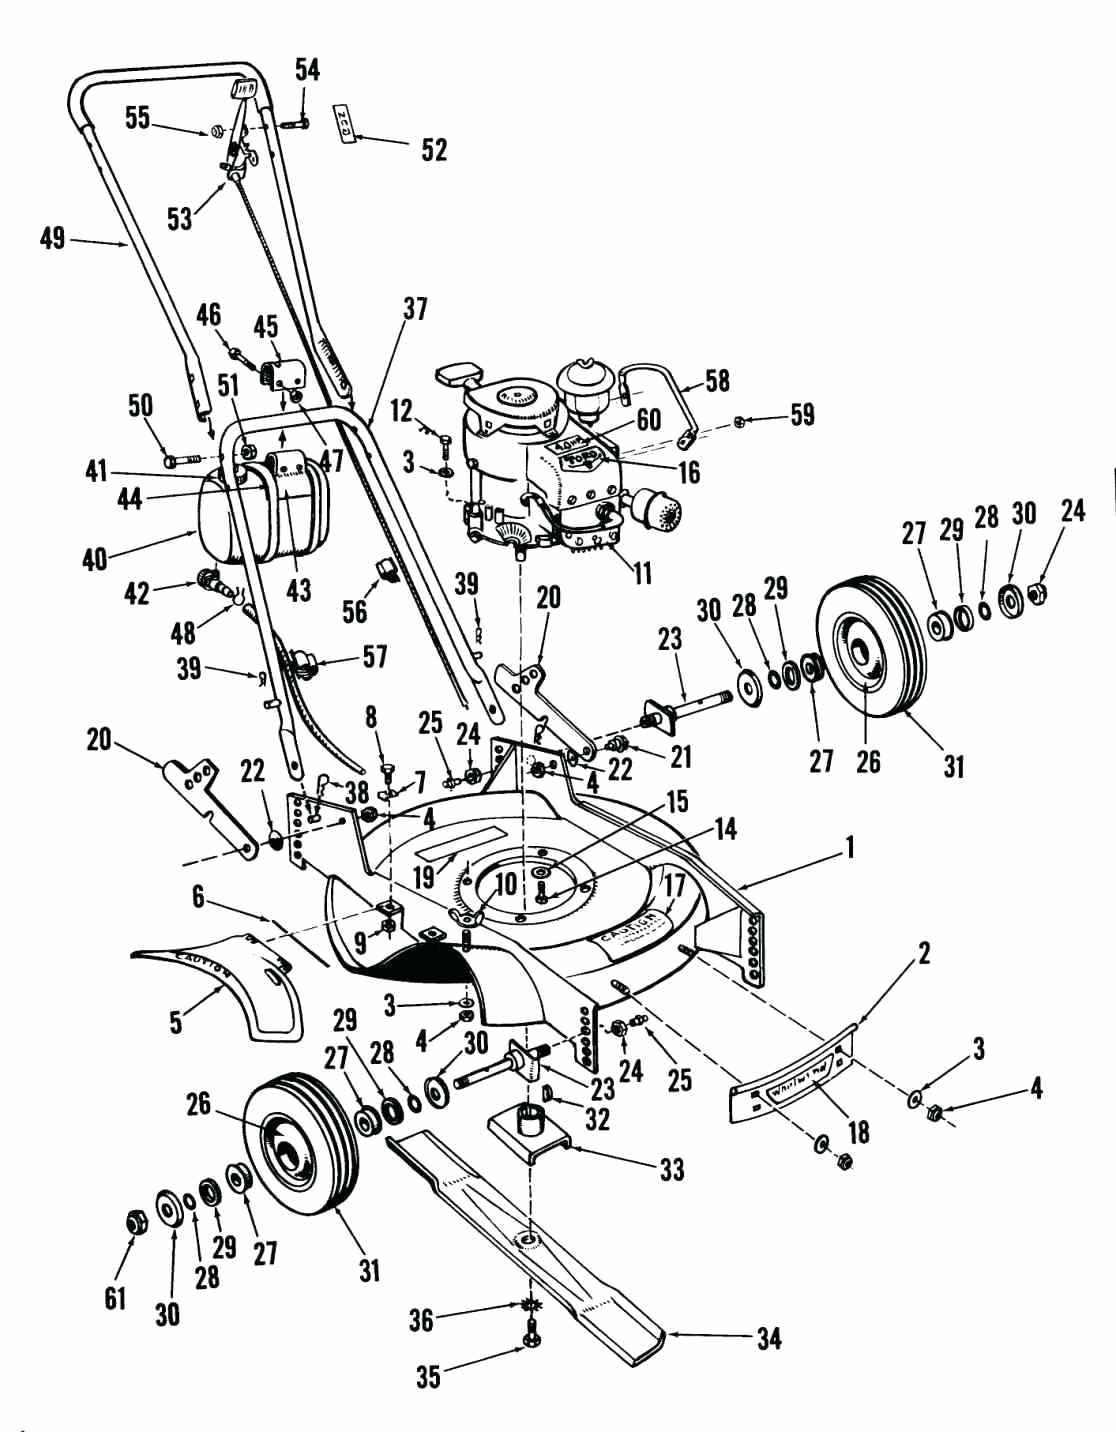 Briggs And Stratton 550ex User Manual